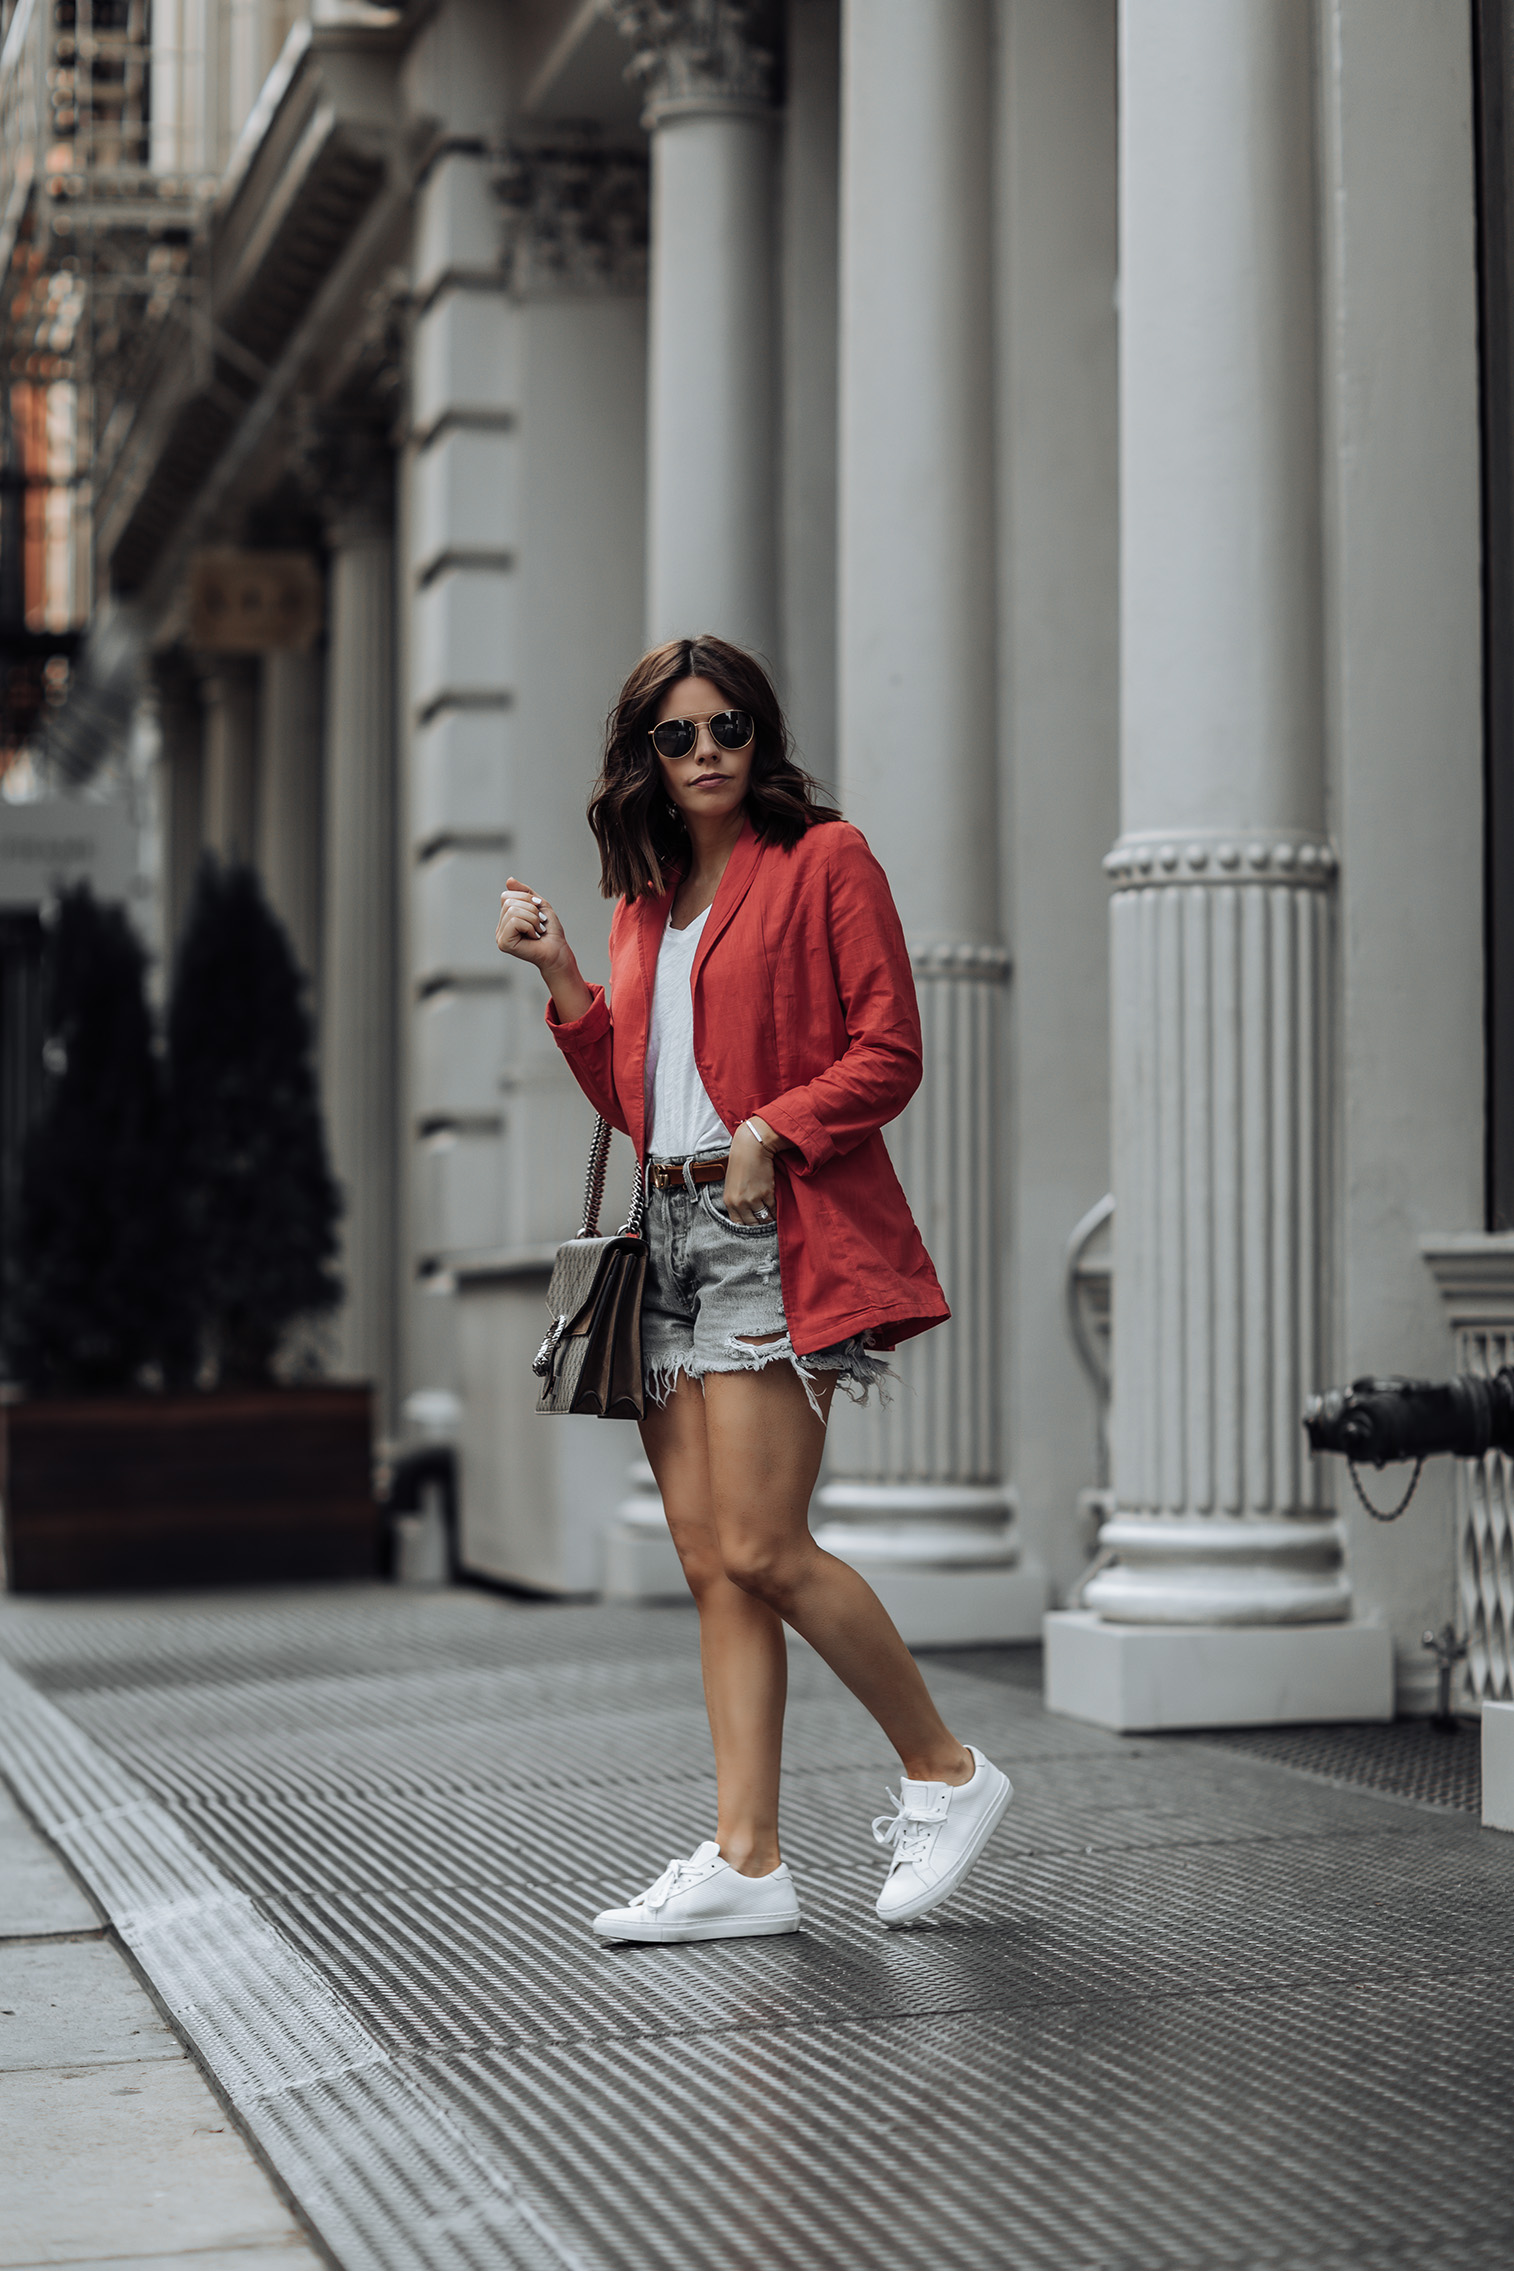 Casual | LIONESS Femme Fatale Blazer in Red | AGOLDE Parker Vintage Cut Off Short in Swampmeet | Gucci Dionysus Bag (smaller version here) | Greats Royal Low Top Sneaker | Gucci Double-G Buckle in Brown Leather #liketkit #revolve #greats #ootd